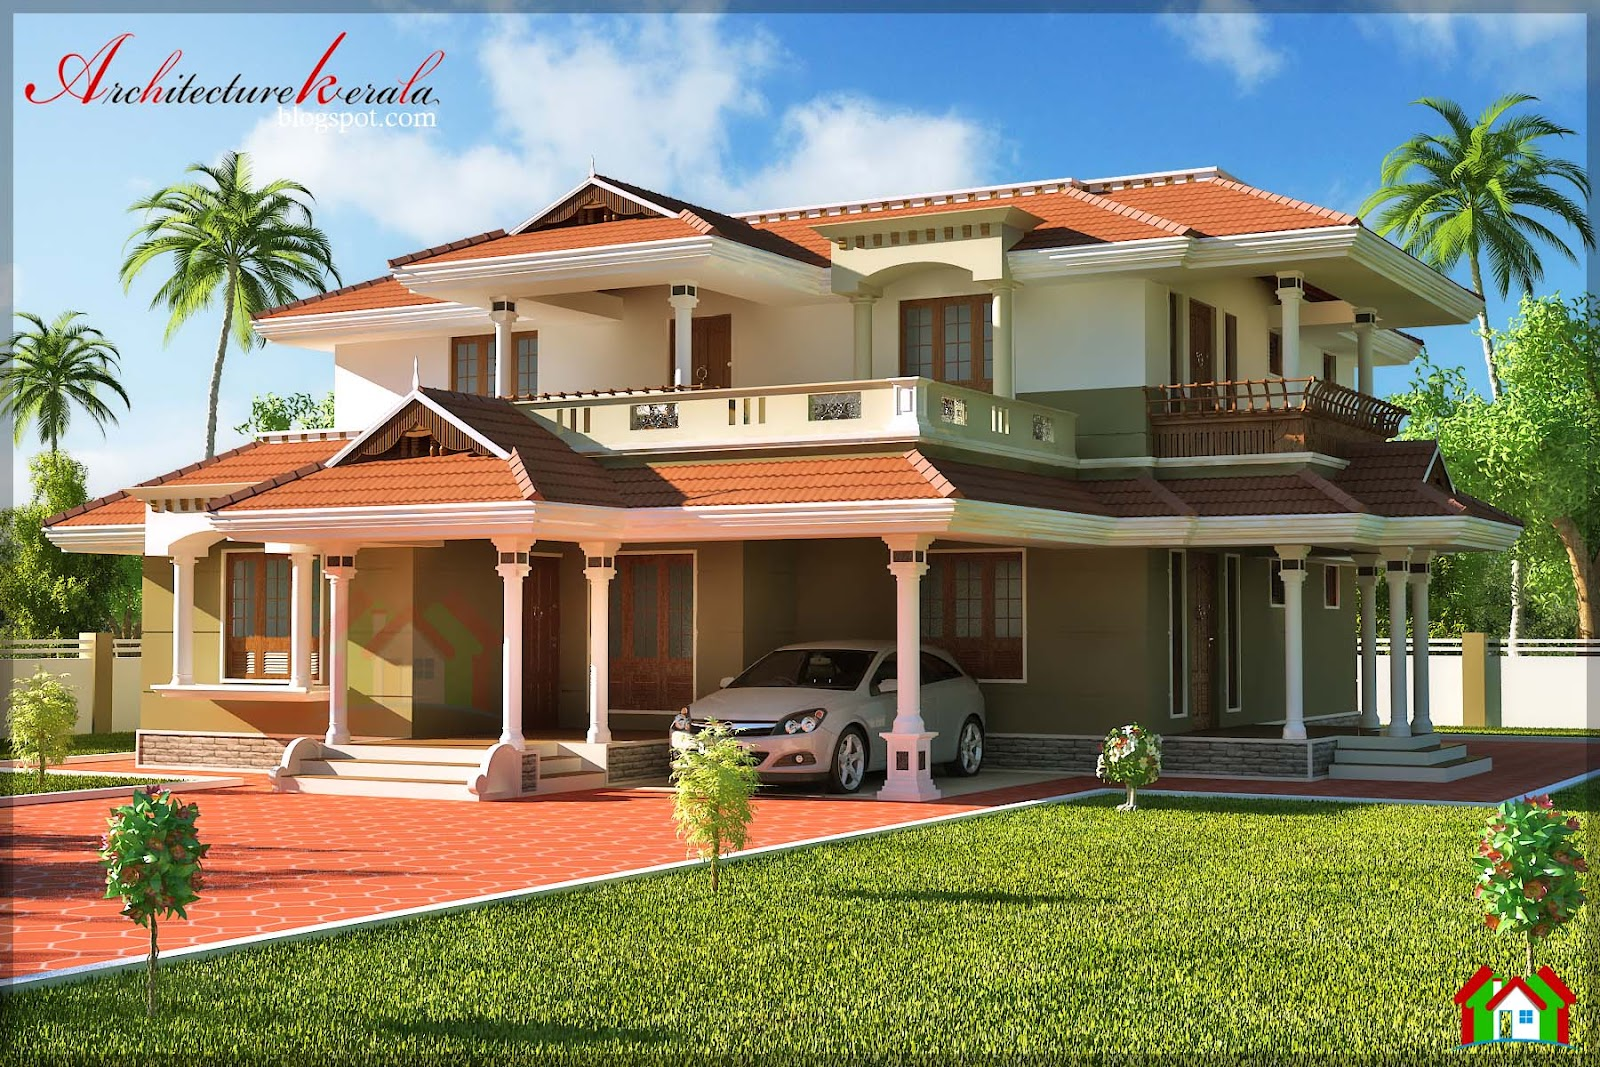 Architecture kerala bed room traditional style house design for Traditional style house